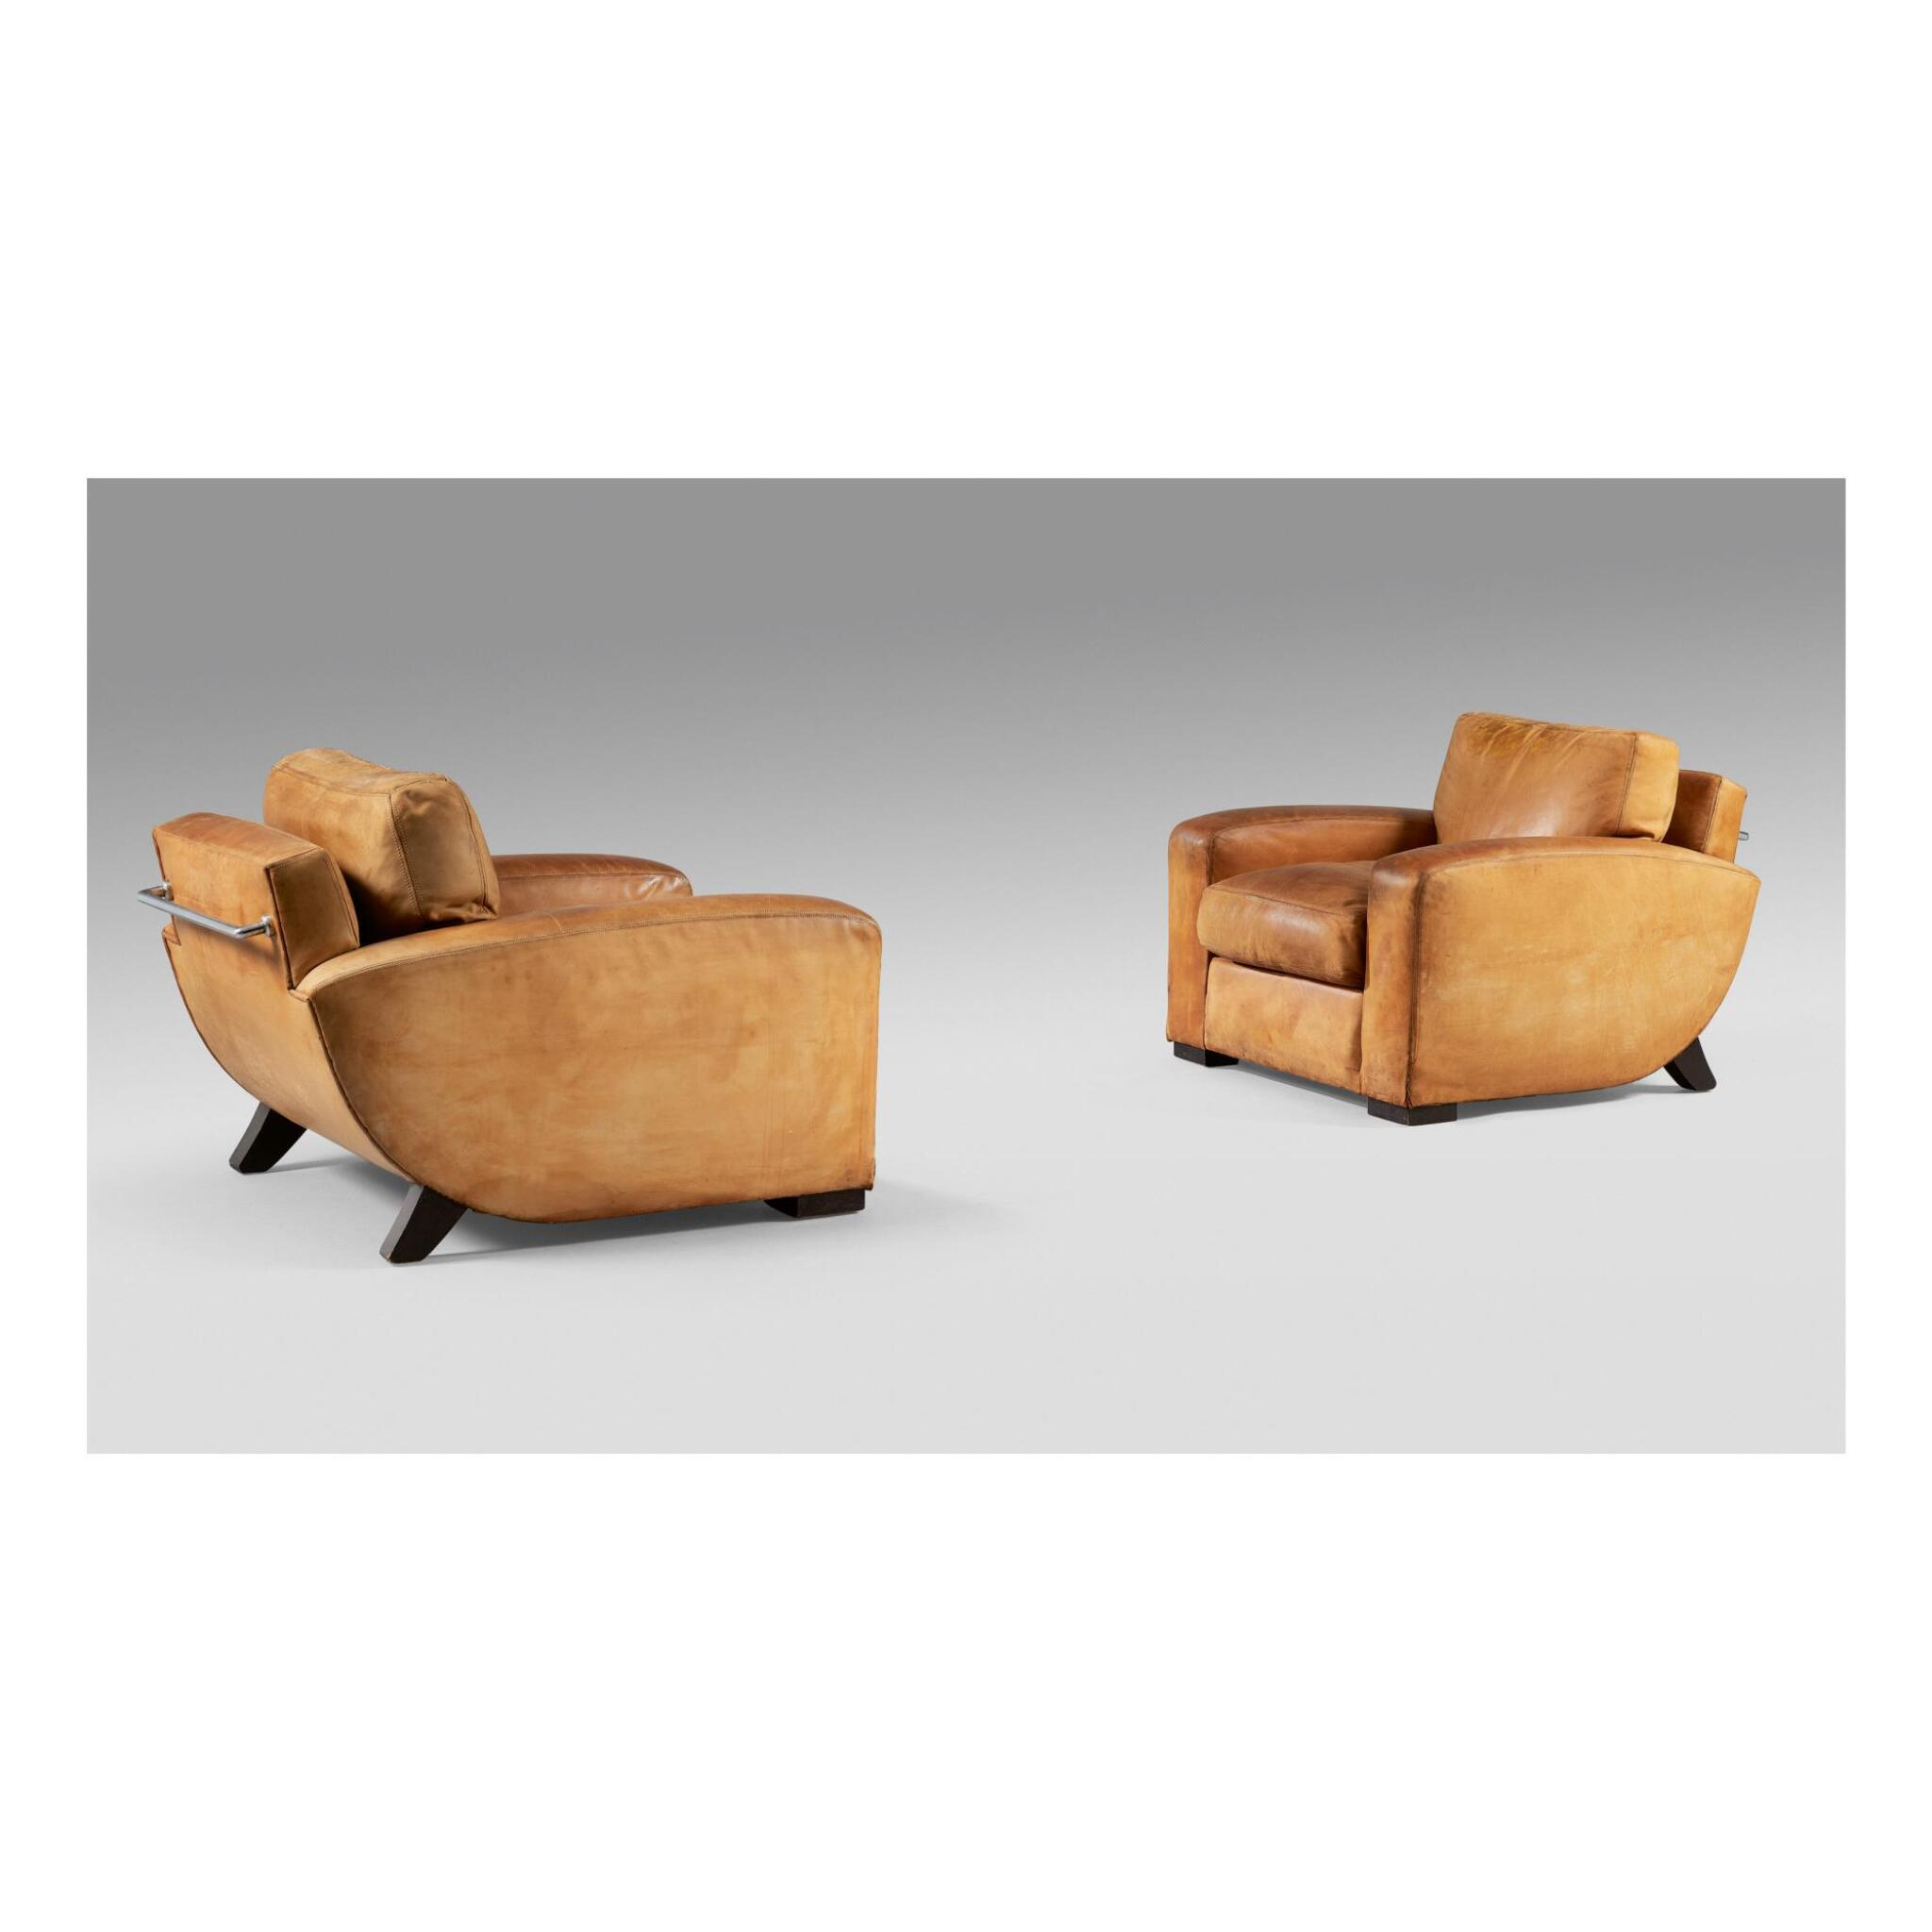 MICHEL ROUX-SPITZ | PAIR OF ARMCHAIRS